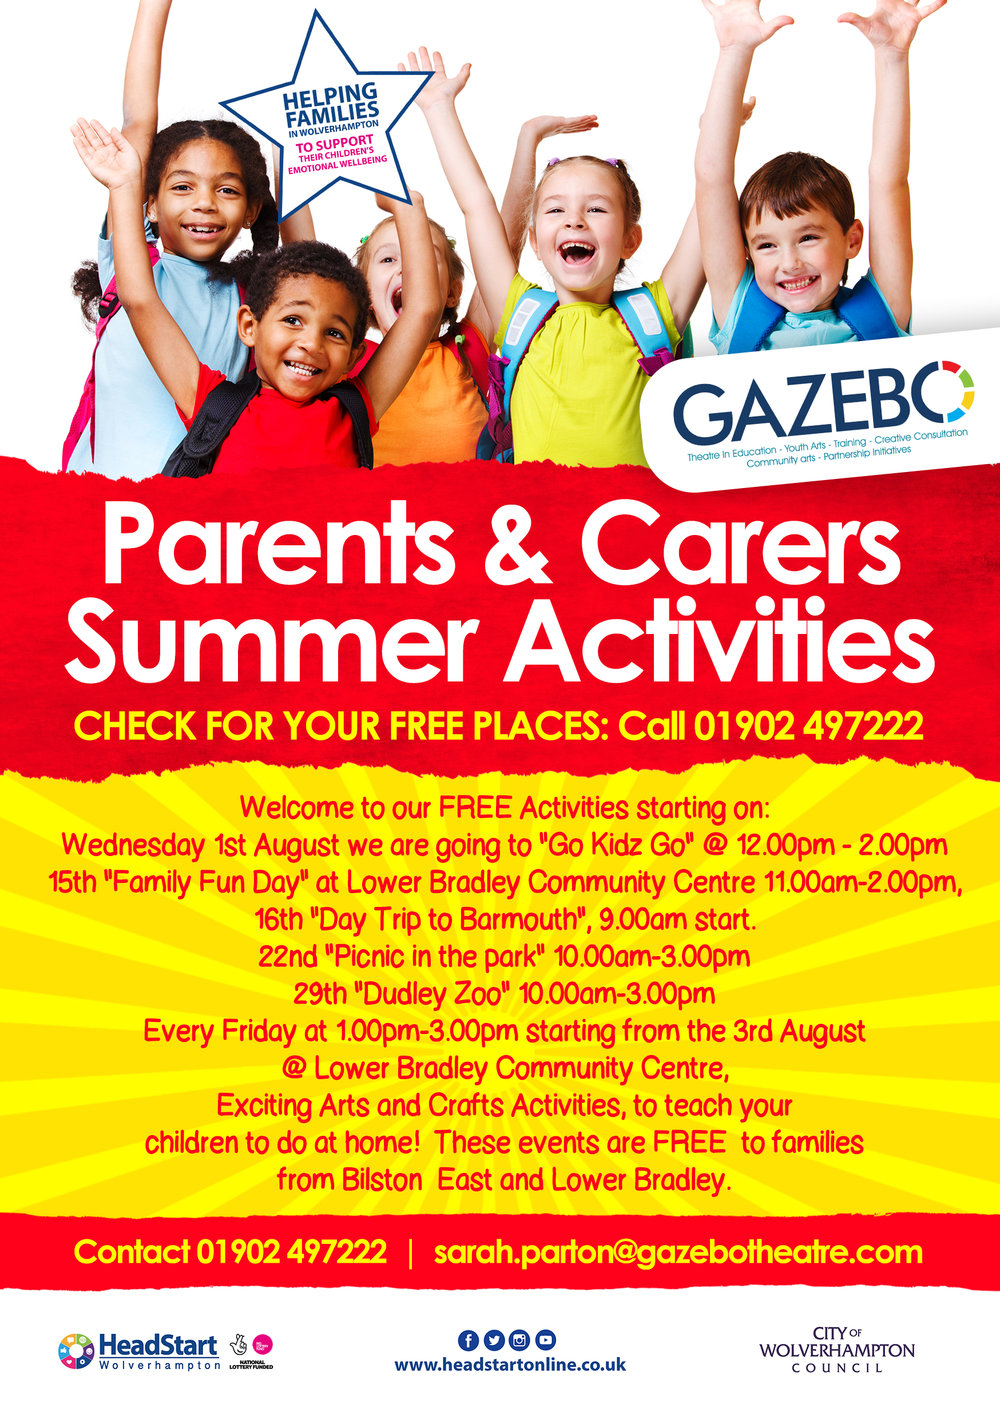 Don't forget to also check the Gazebo Summer Programme for Parents and Carers!